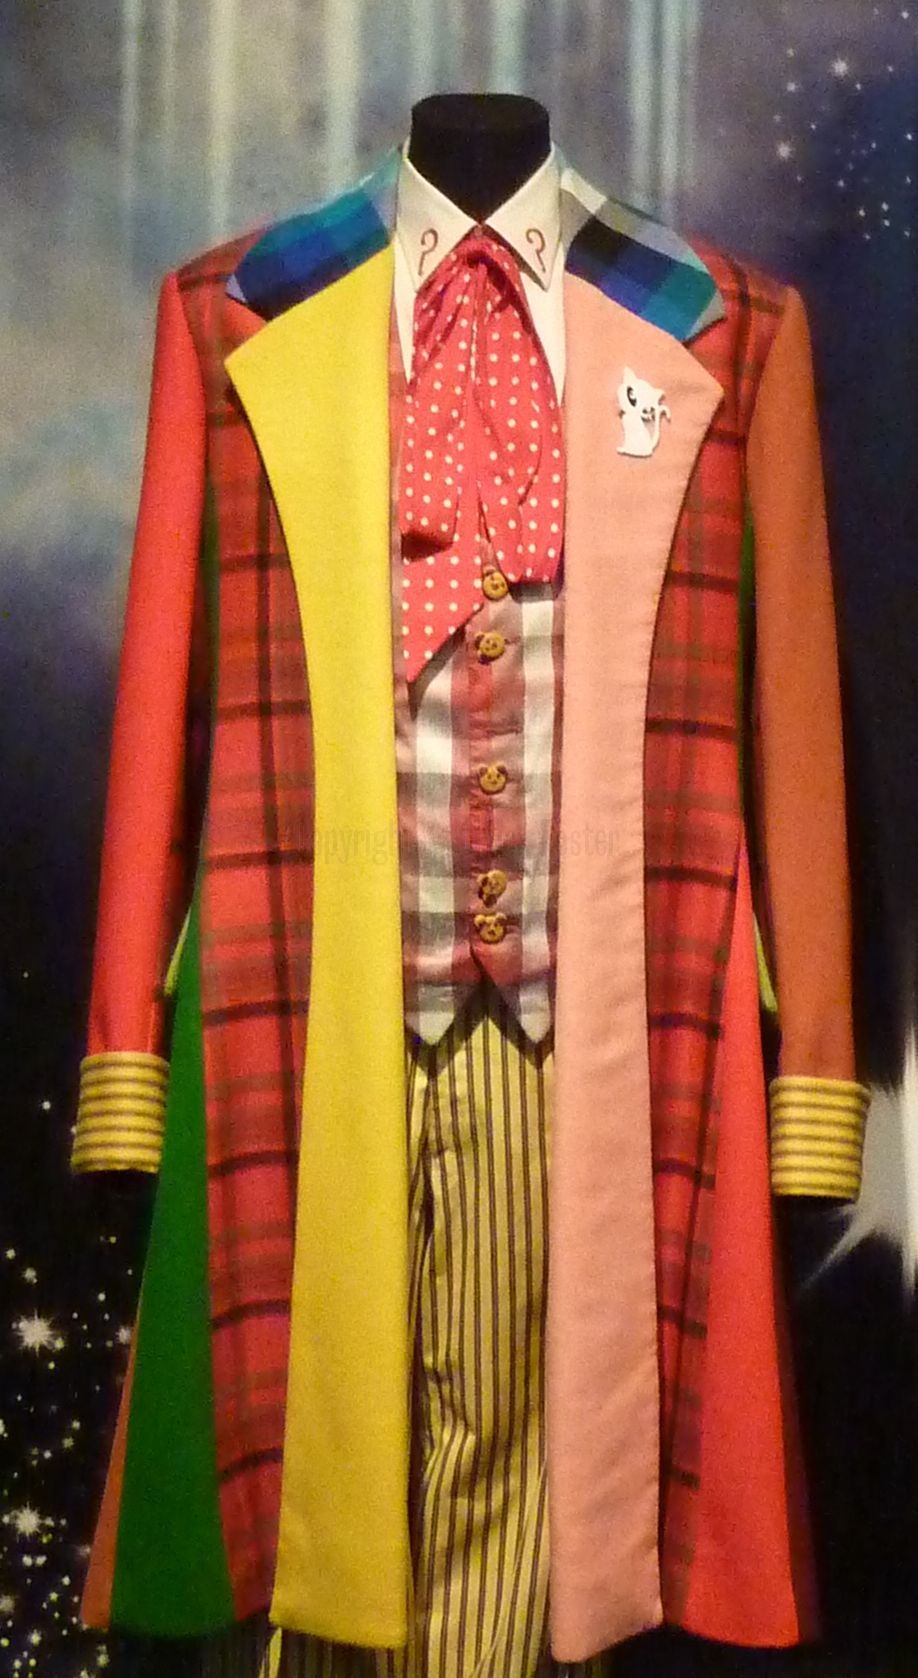 The Sixth Doctor's Costume (Credit: Chuck Foster)